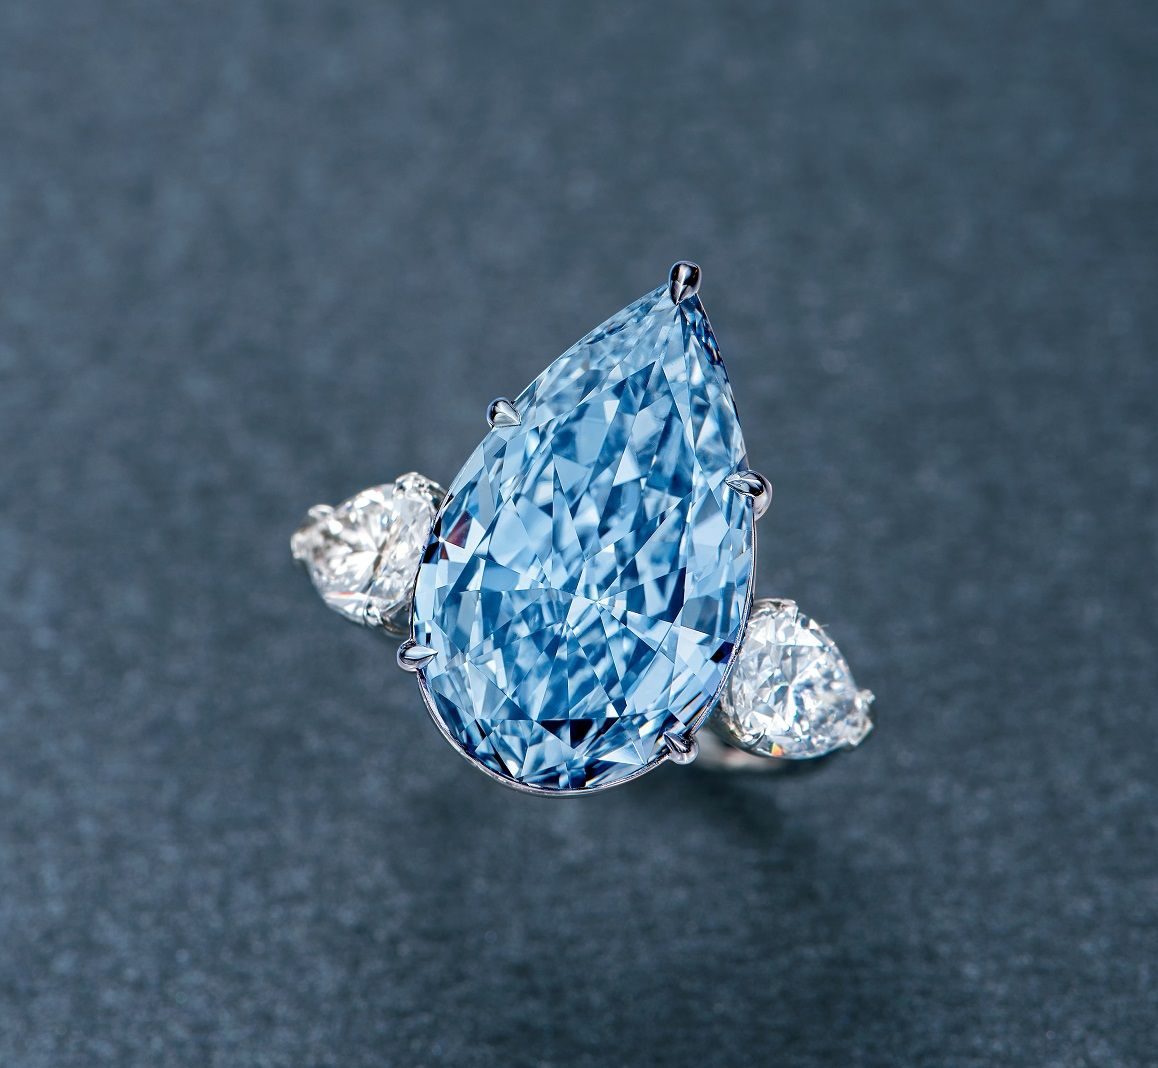 A MAGNIFICENT 8.26 CARAT FANCY INTENSE BLUE DIAMOND AND DIAMOND RING. Set with a pear-shaped fancy intense blue Type IIb diamond weighing 8.26 carats, flanked on either side by pear-shaped diamonds weighing 0.90 (D/VS1) and 0.98 carats (D/SI1), mounted in platinum. Estimate Upon Request // SOLD PRICE USD 15,406,080. GIA / Natural Fancy Intense Blue color, VS2 clarity, with excellent polish [POLY AUCTION HK - Magnificent Jewels - 2 OCT. 2017] #POLYAuction #FancyIntenseBlue #Diamond…